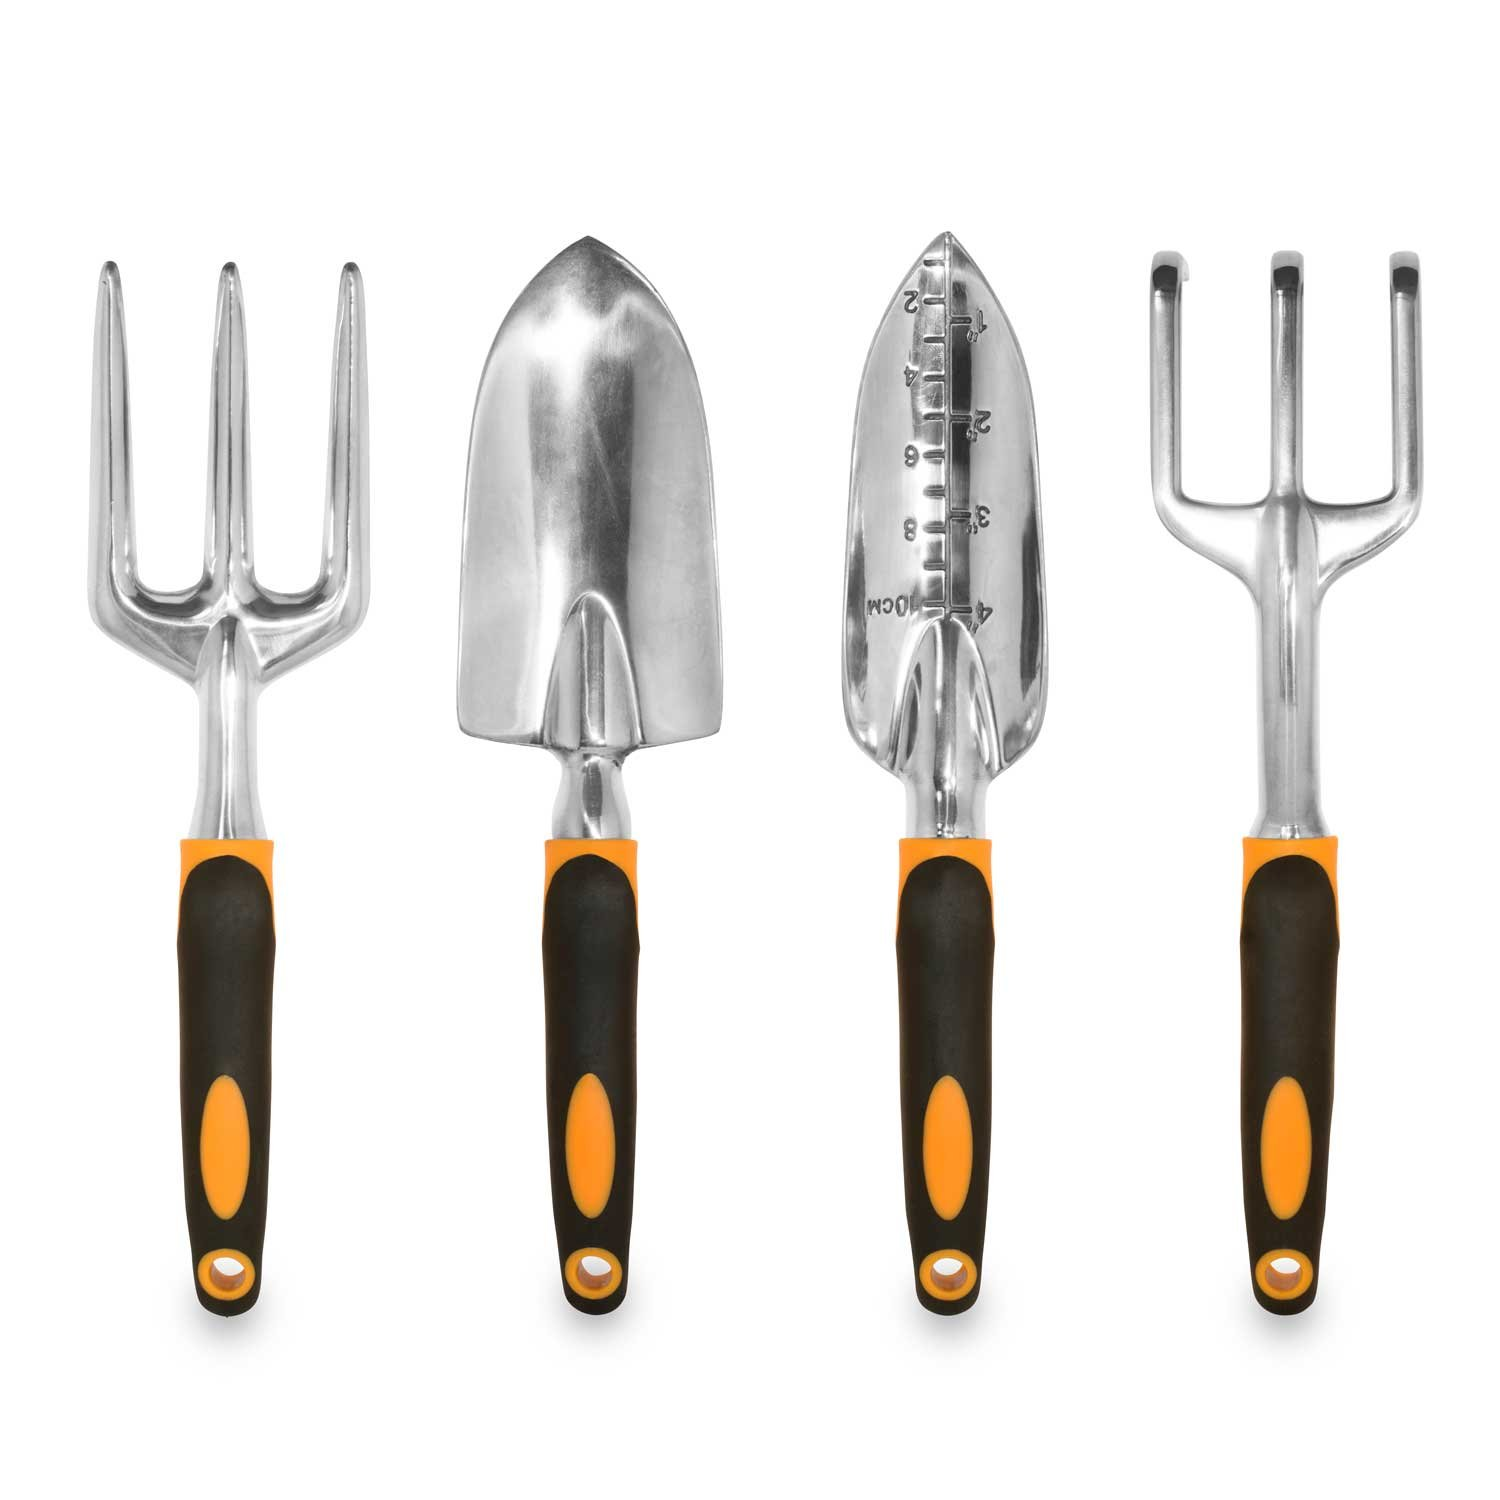 Best hand garden tool set for digging fiskars 3 piece for Common garden hand tools